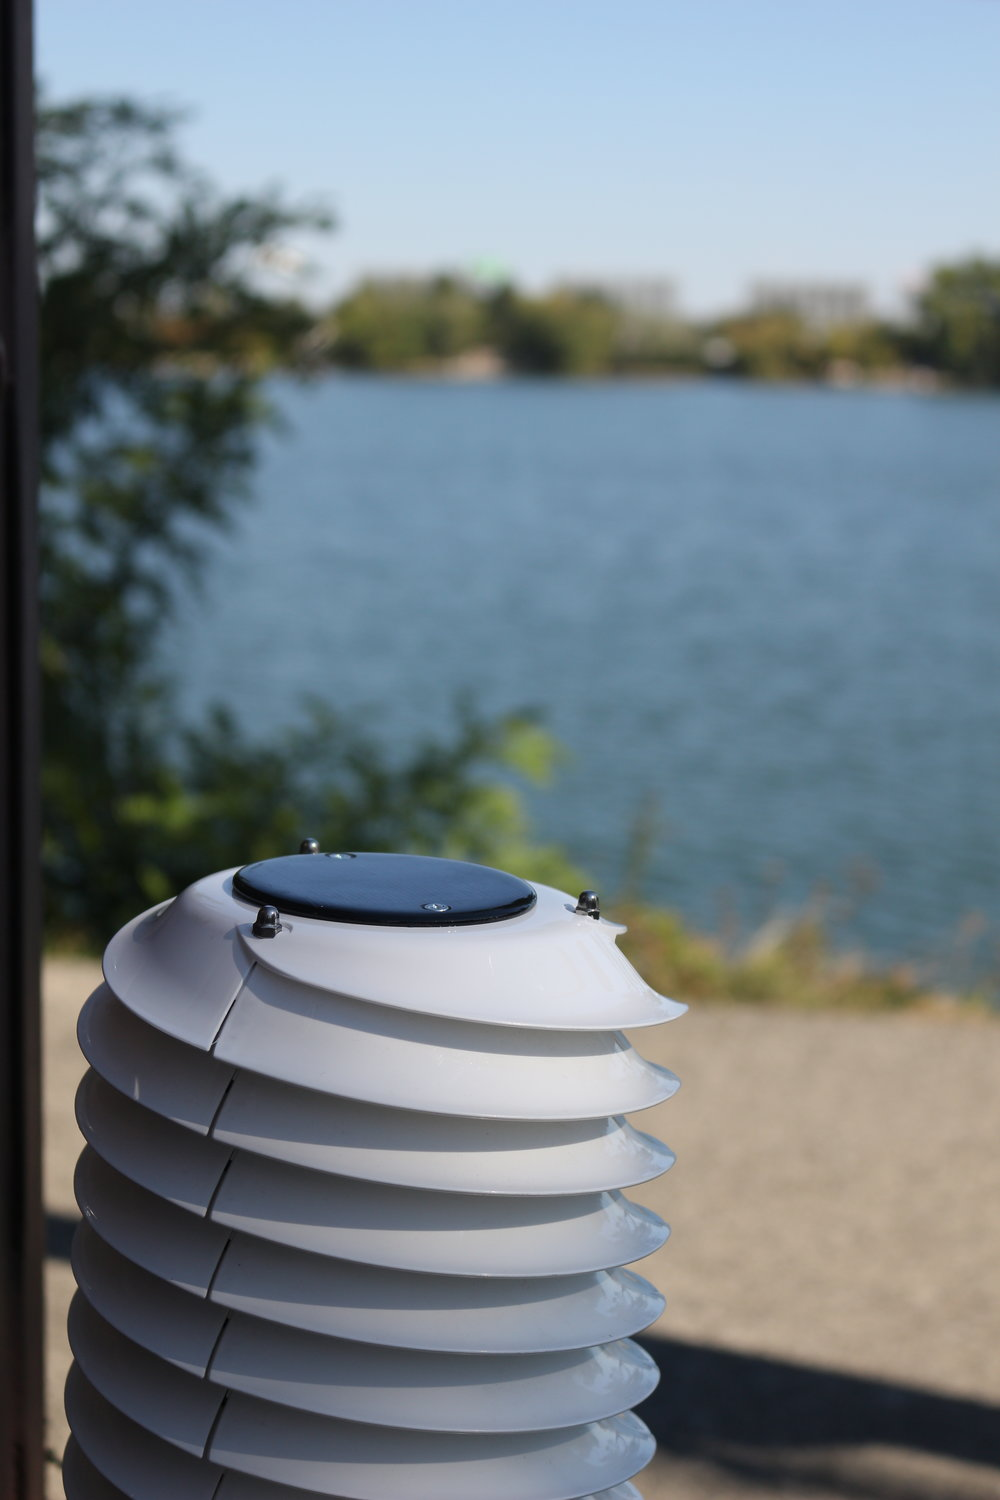 MeteoHelix IoT Pro Sigfox weather station on a lake